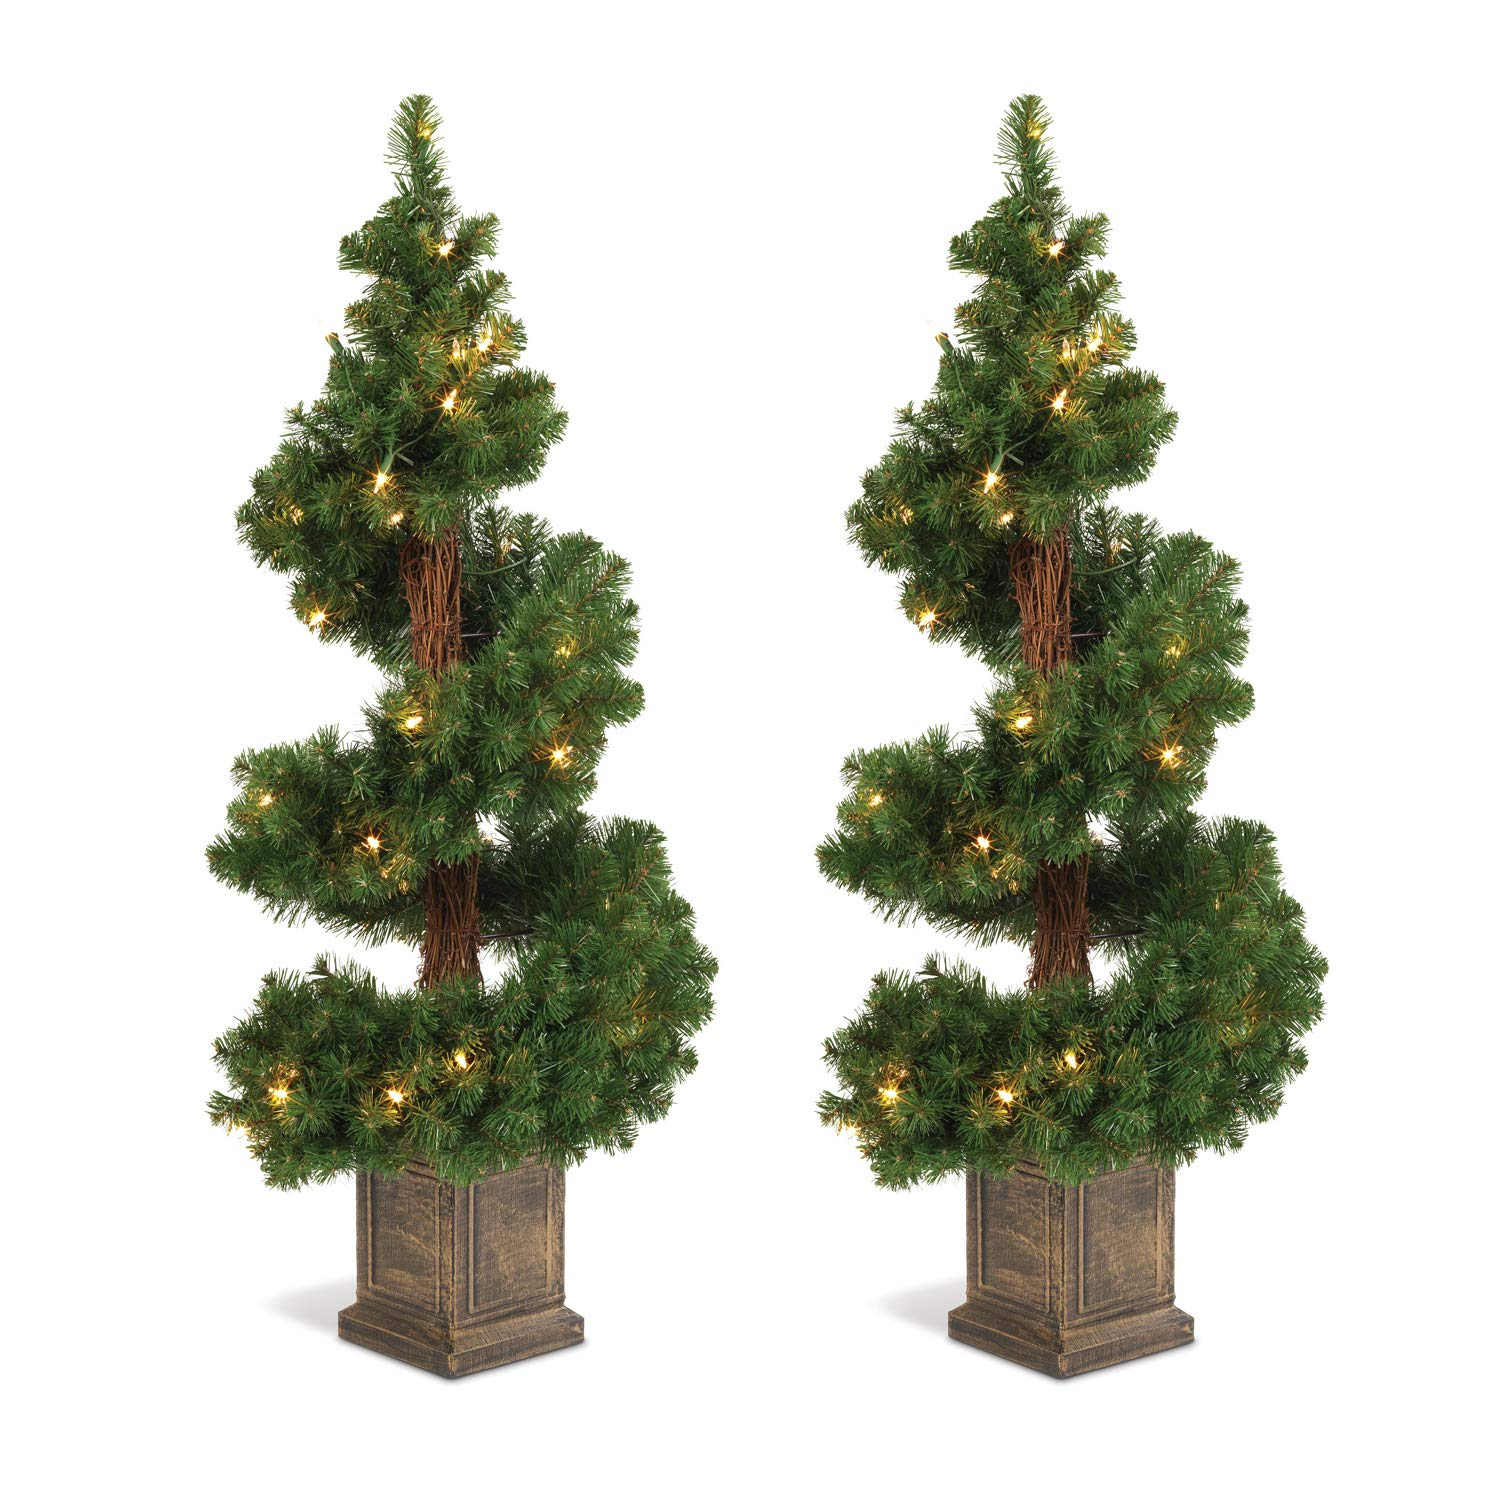 Set of 2 Lighted 3.5 Foot High Christmas Pine Topiary Trees in Base - Potted Entryway Trees Ten Waterloo